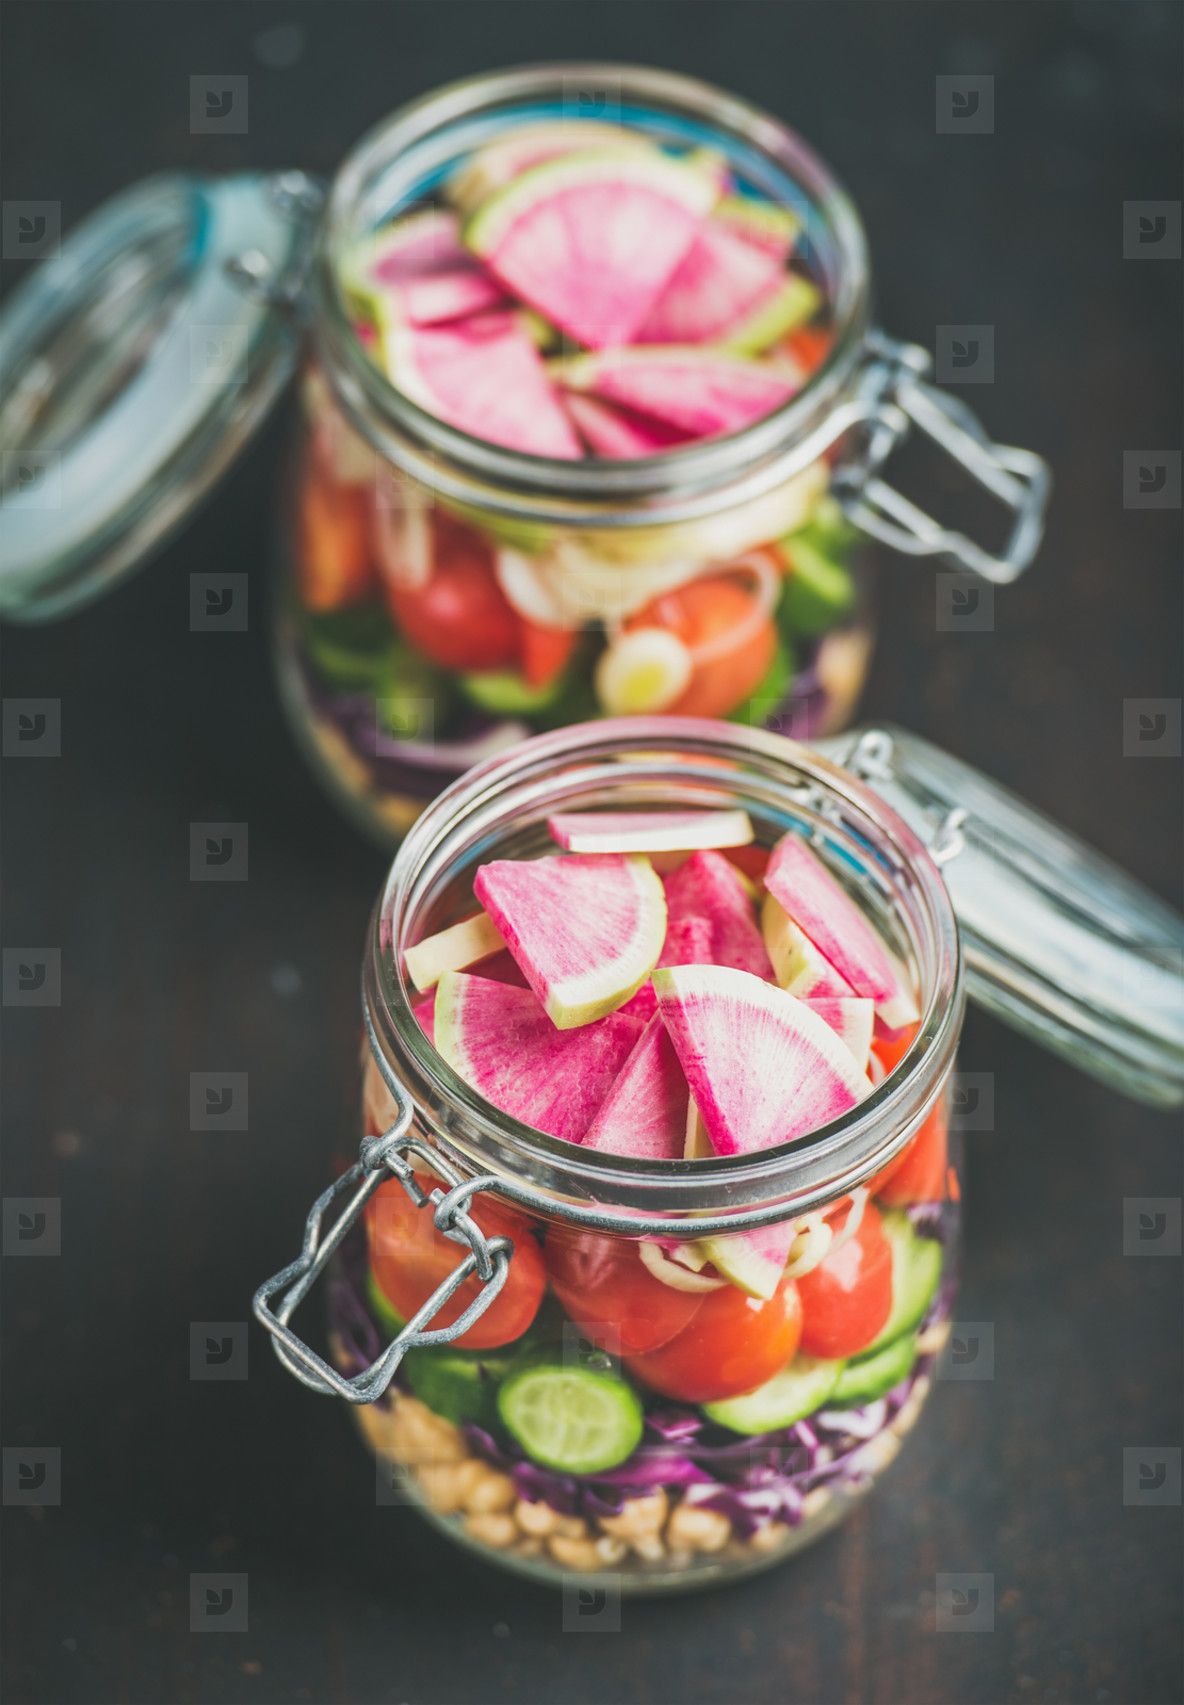 Vegetable  chickpea sprout salad in jars  dark scorched wooden background